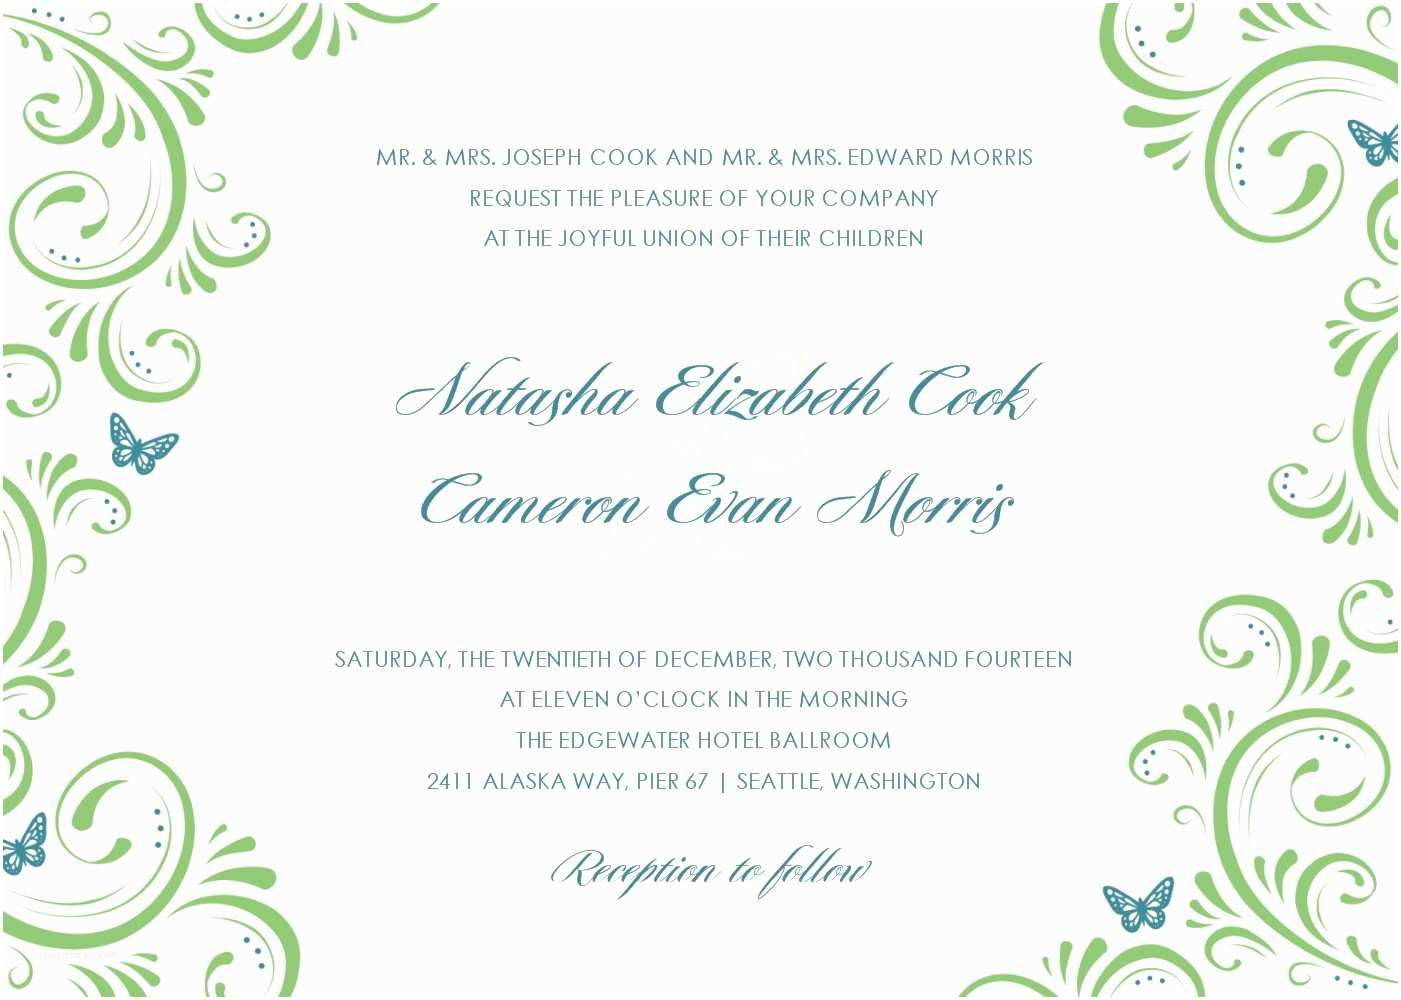 Wedding Invitation Templates Beautiful Wedding Invitation Templates